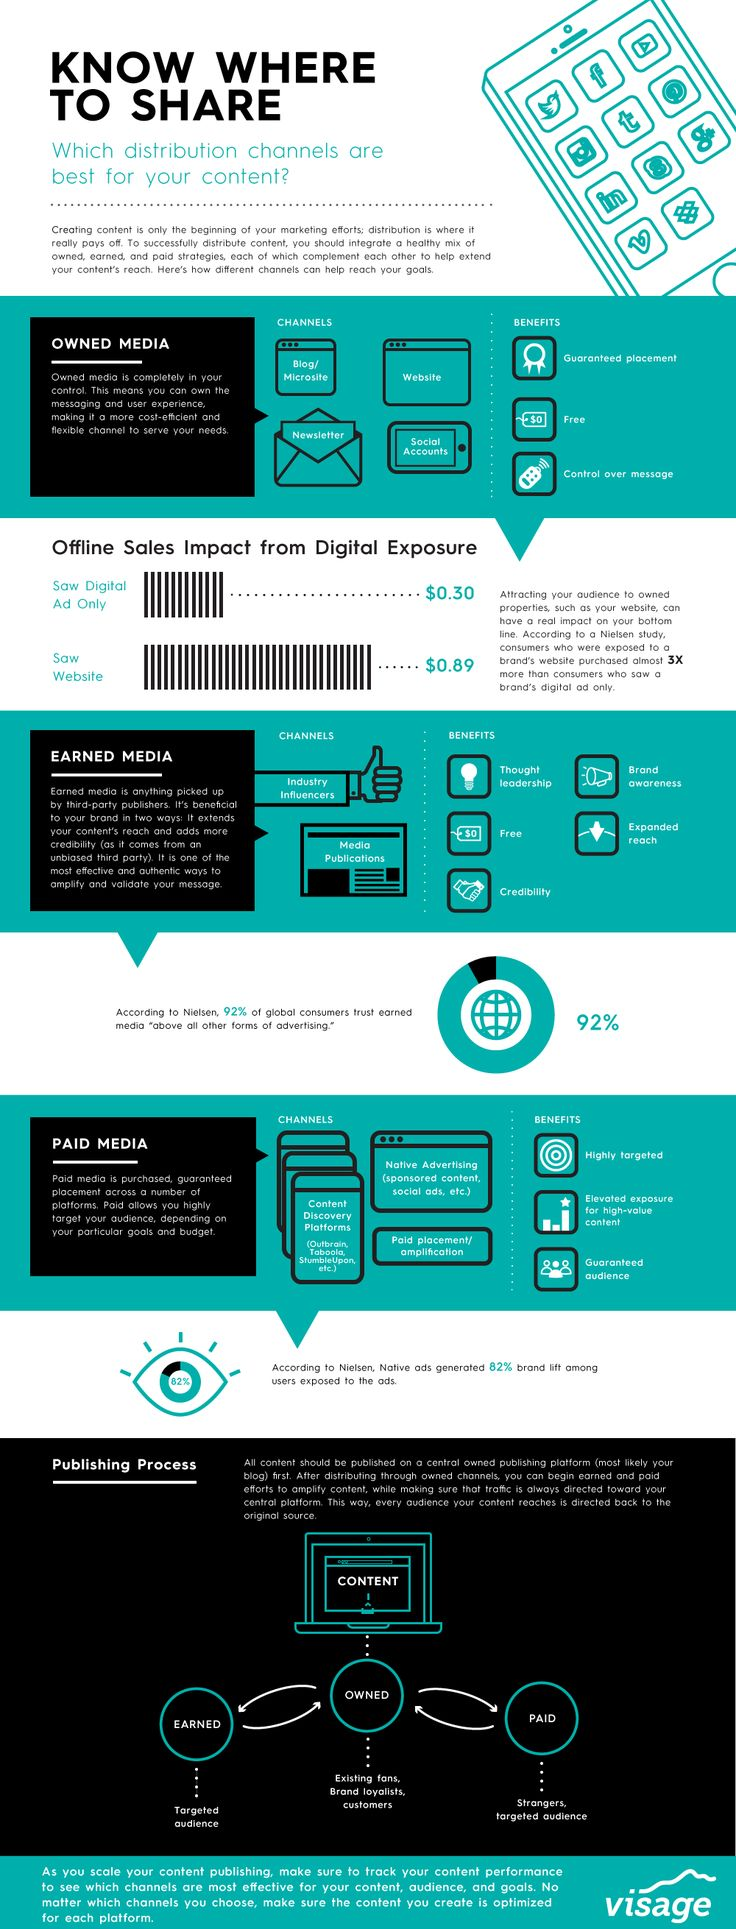 Where should you distribute your content? Owned, earned and paid media via @visage